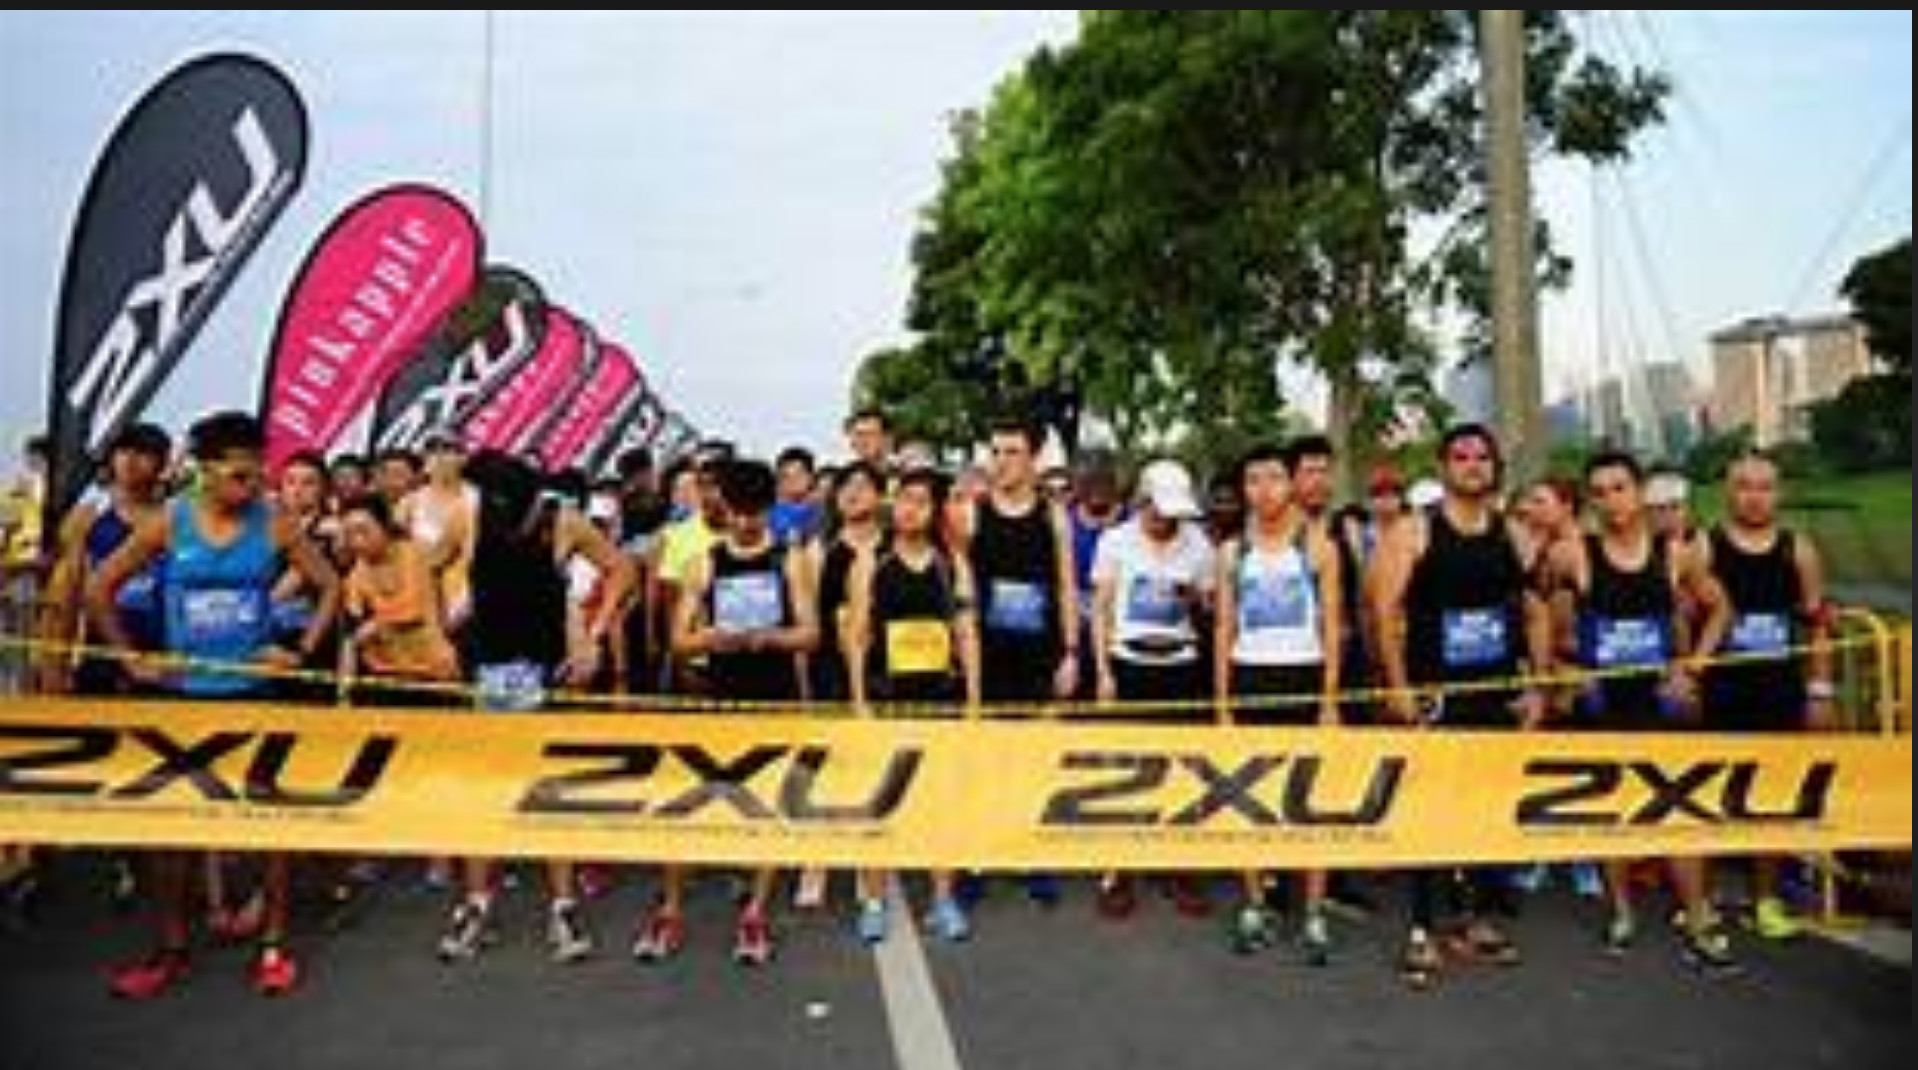 Race results for the 2XU Compression Run Singapore 2019 held April 7 have not been released due to payment issues